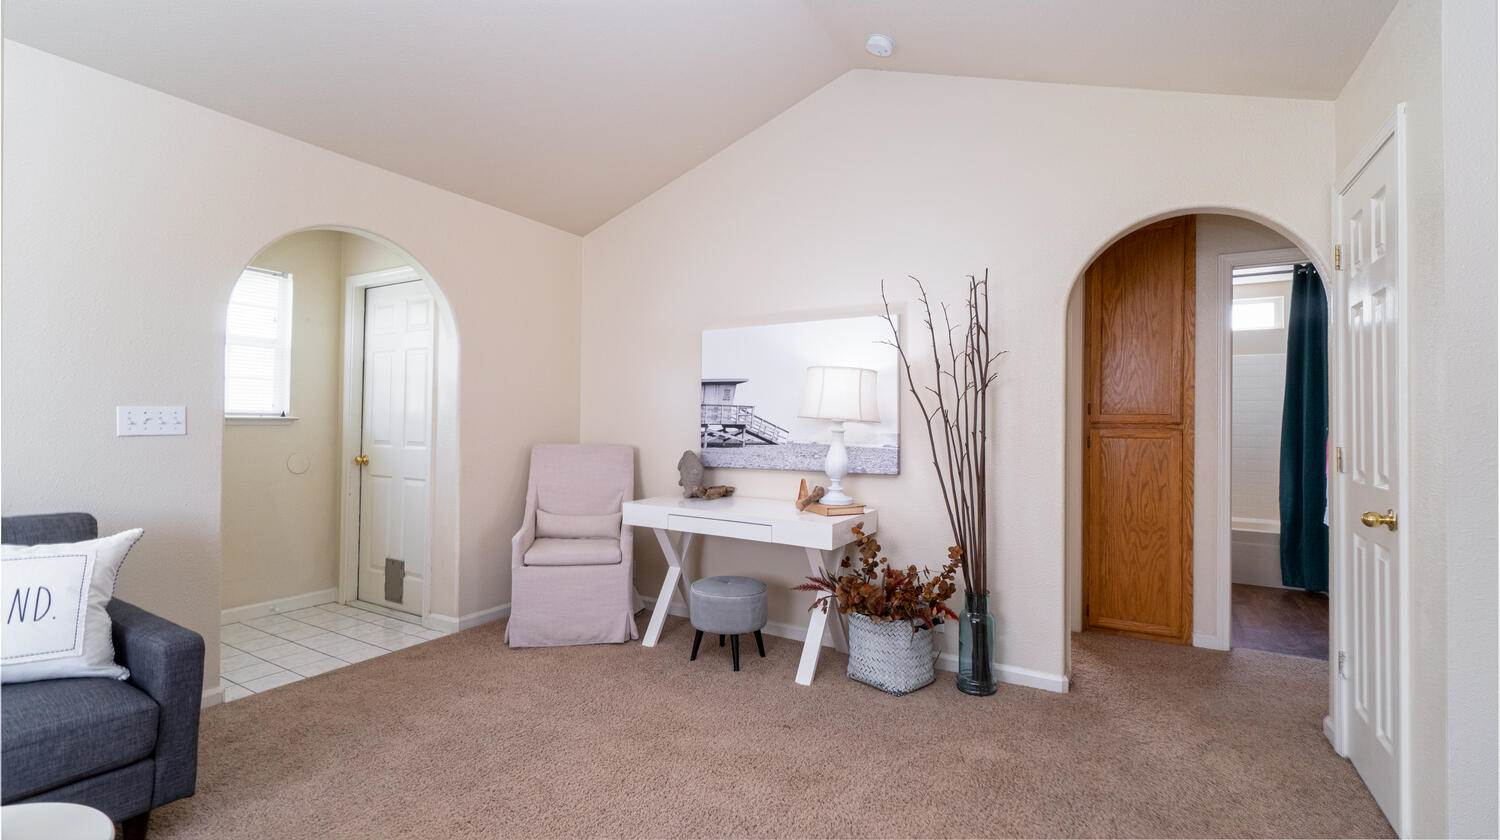 2 Sir Andrew Court, Chico, CA 95928